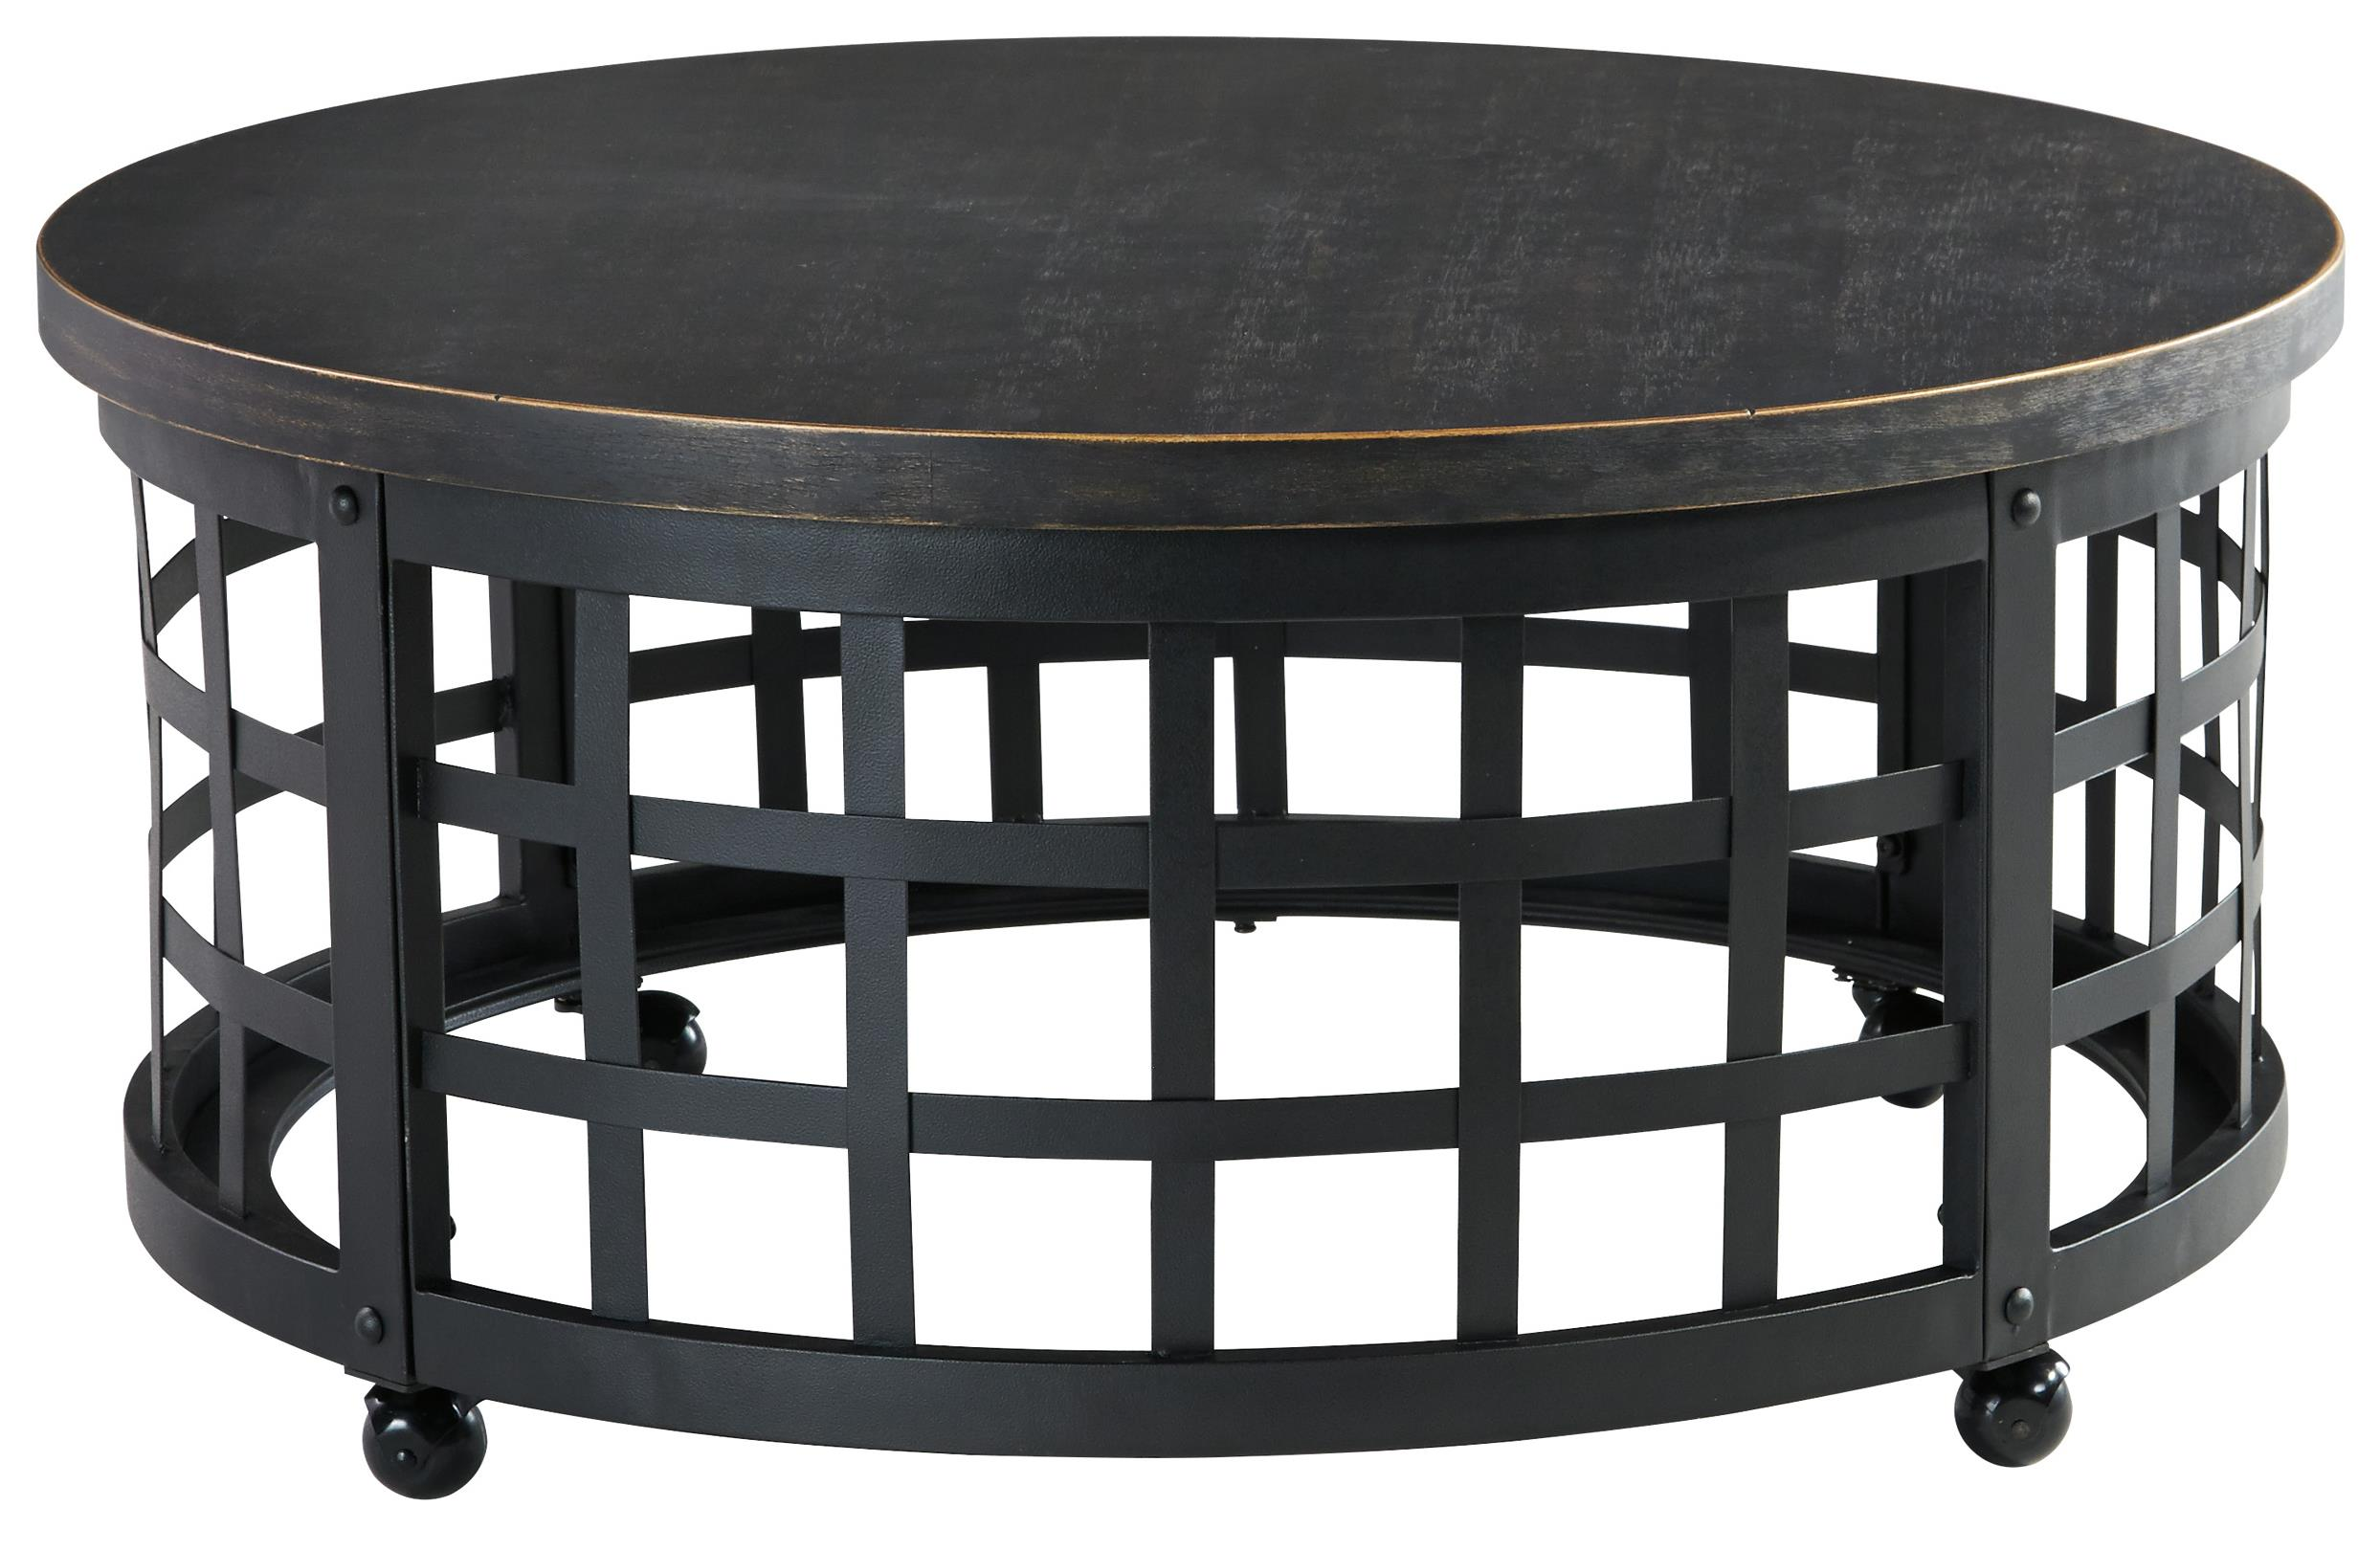 Signature Design by Ashley Marimon Round Cocktail Table - Item Number: T746-8